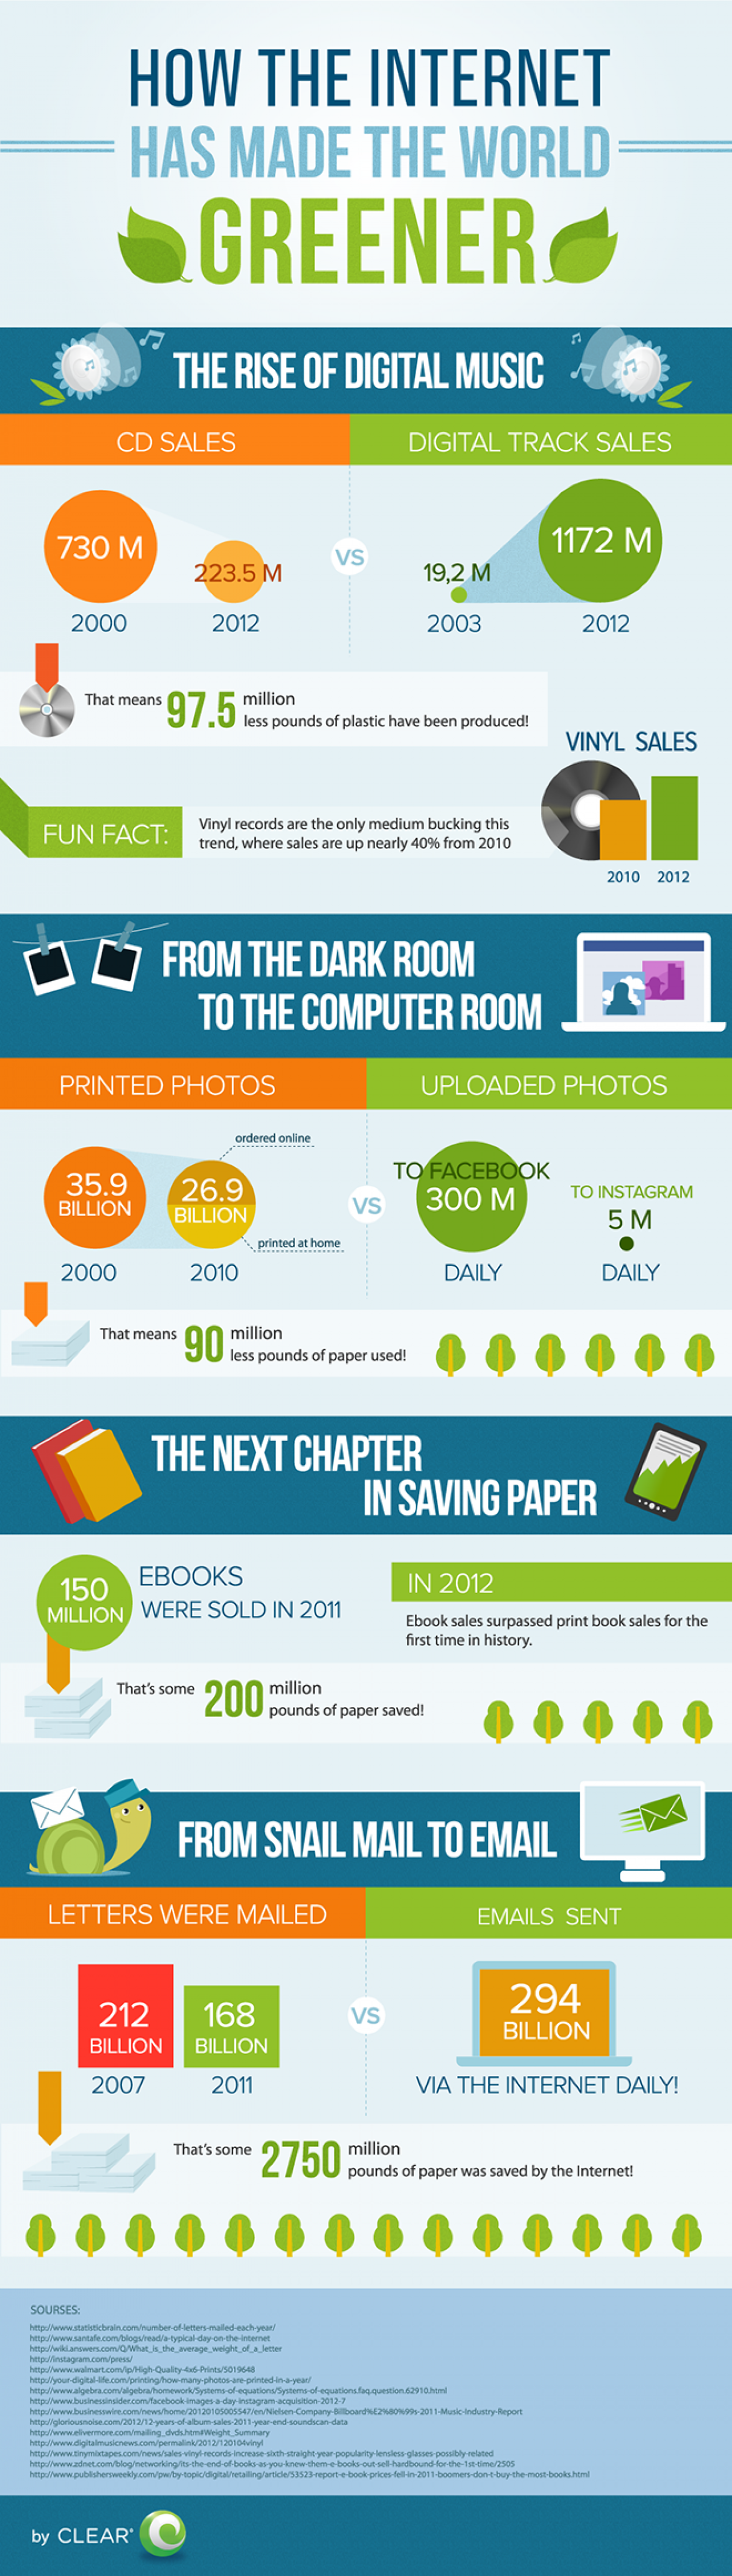 How the Internet Has Made The World Greener Infographic